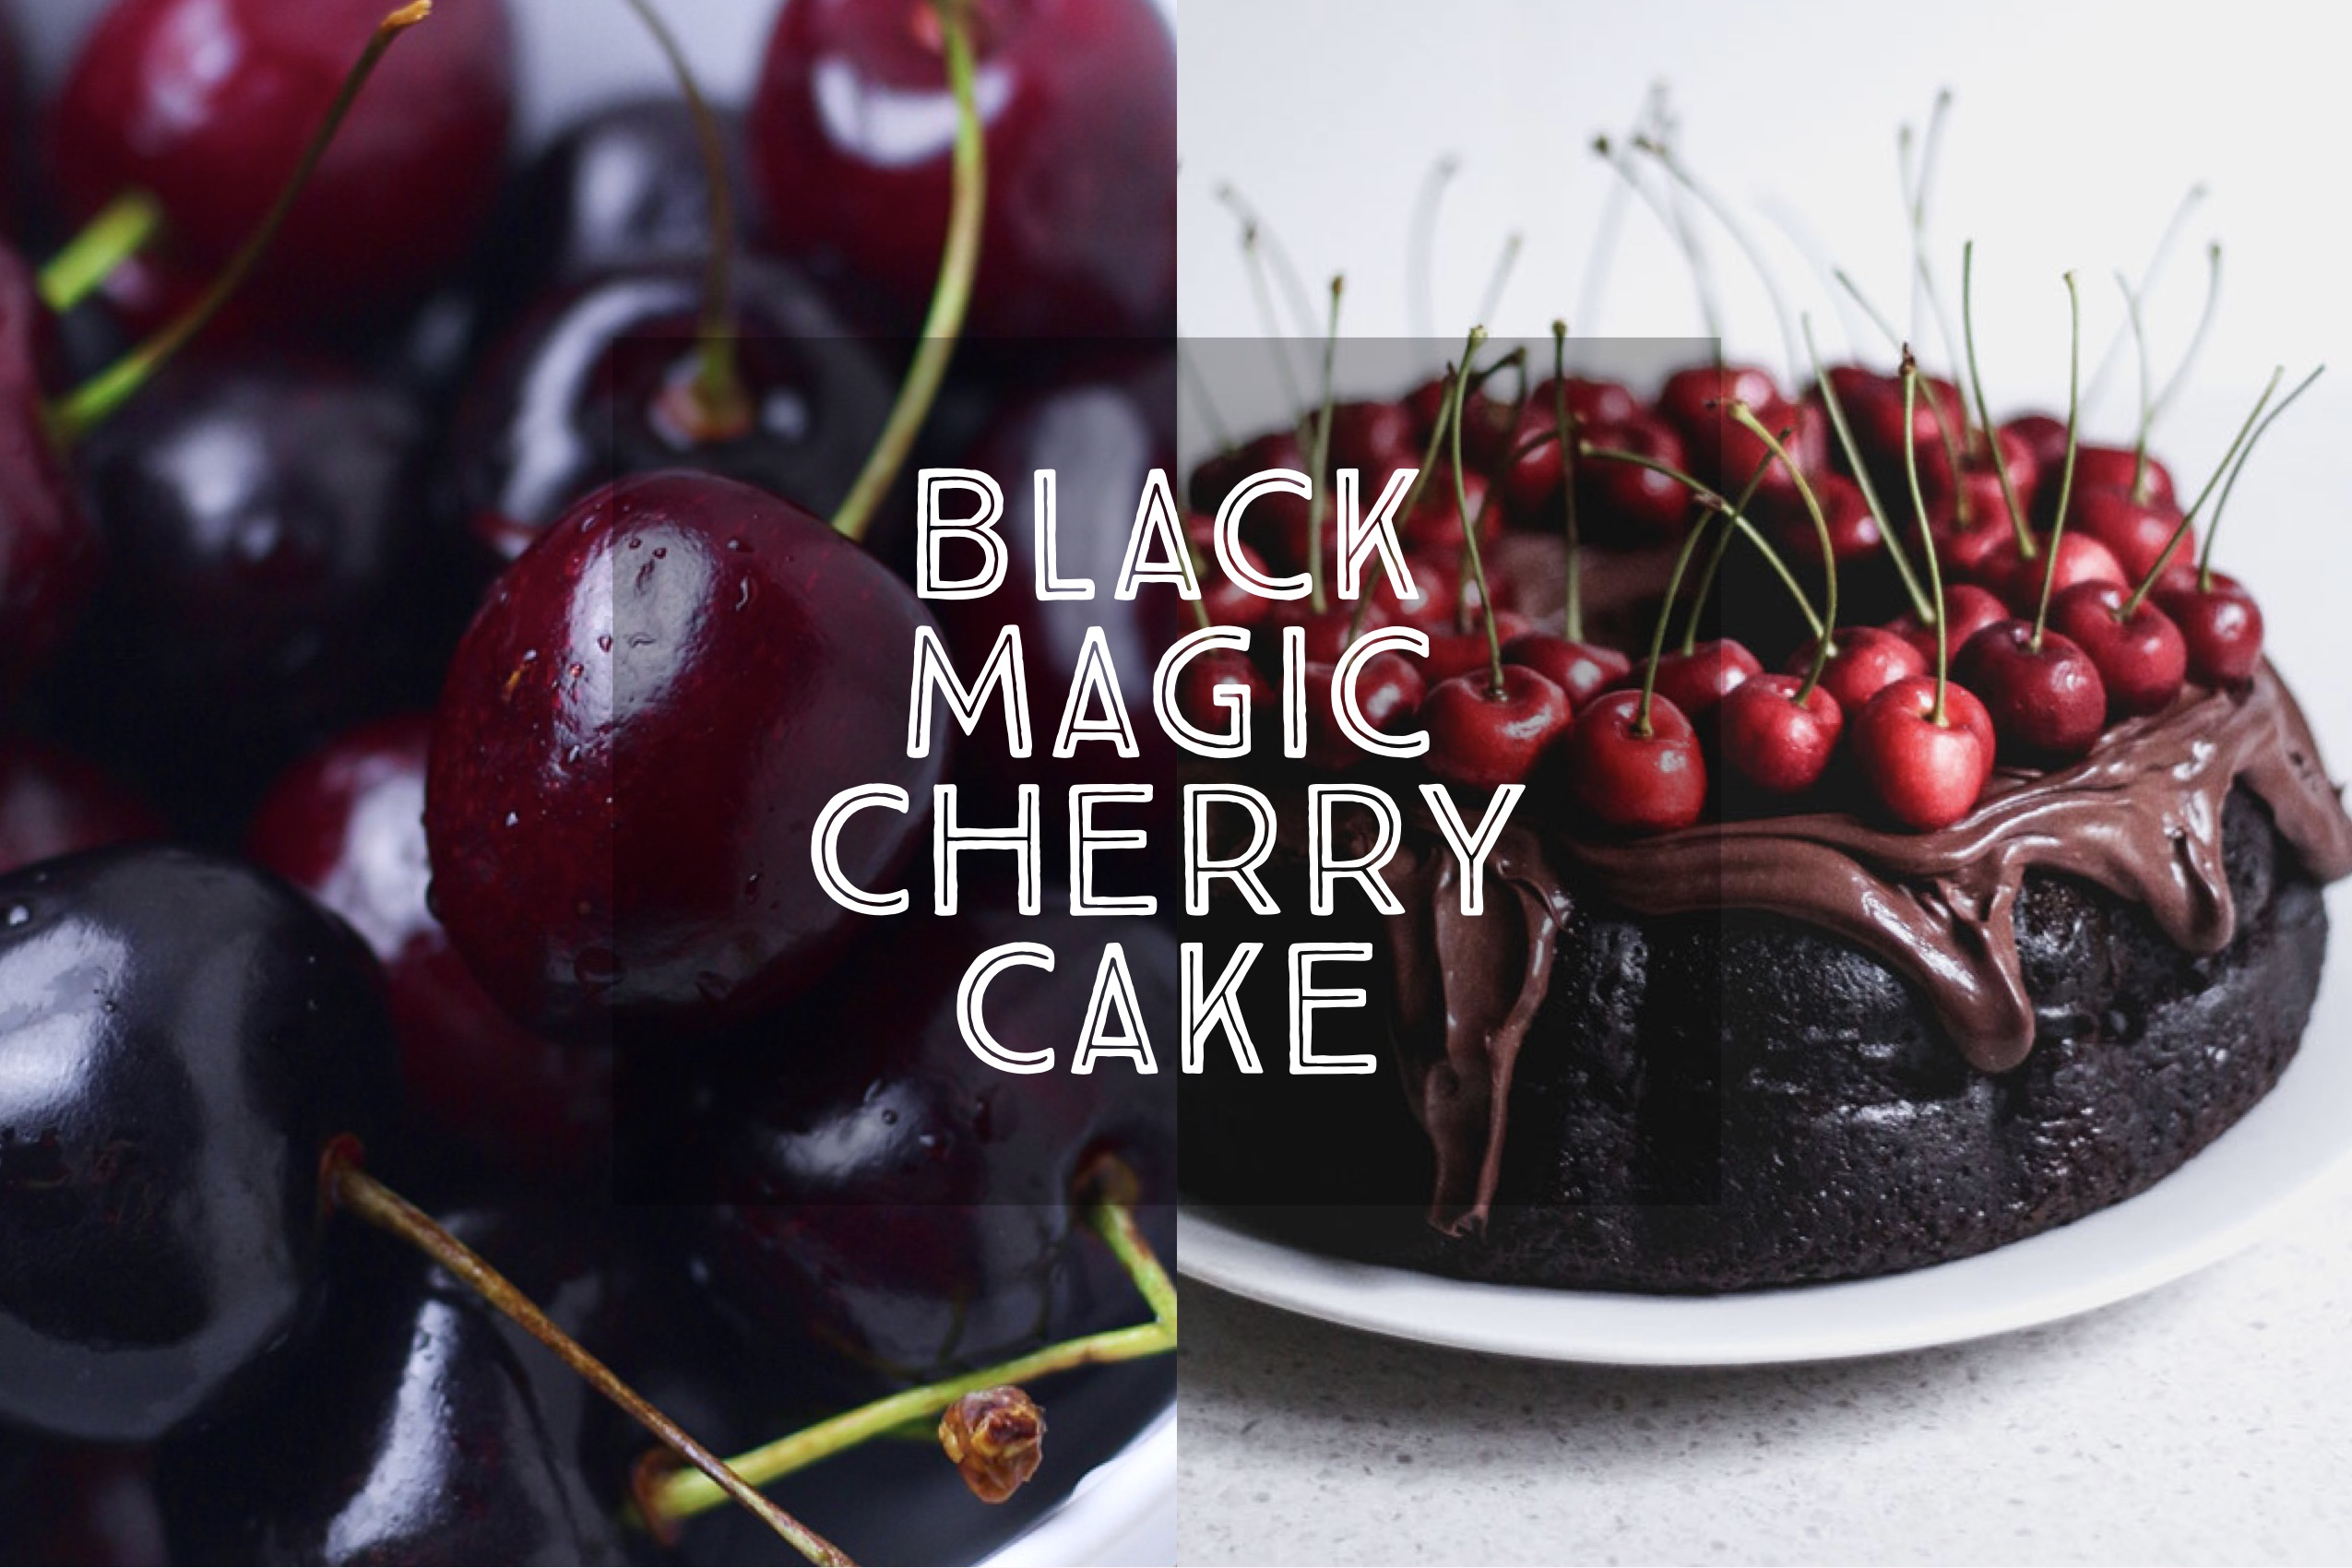 Black Magic Cherry Cake